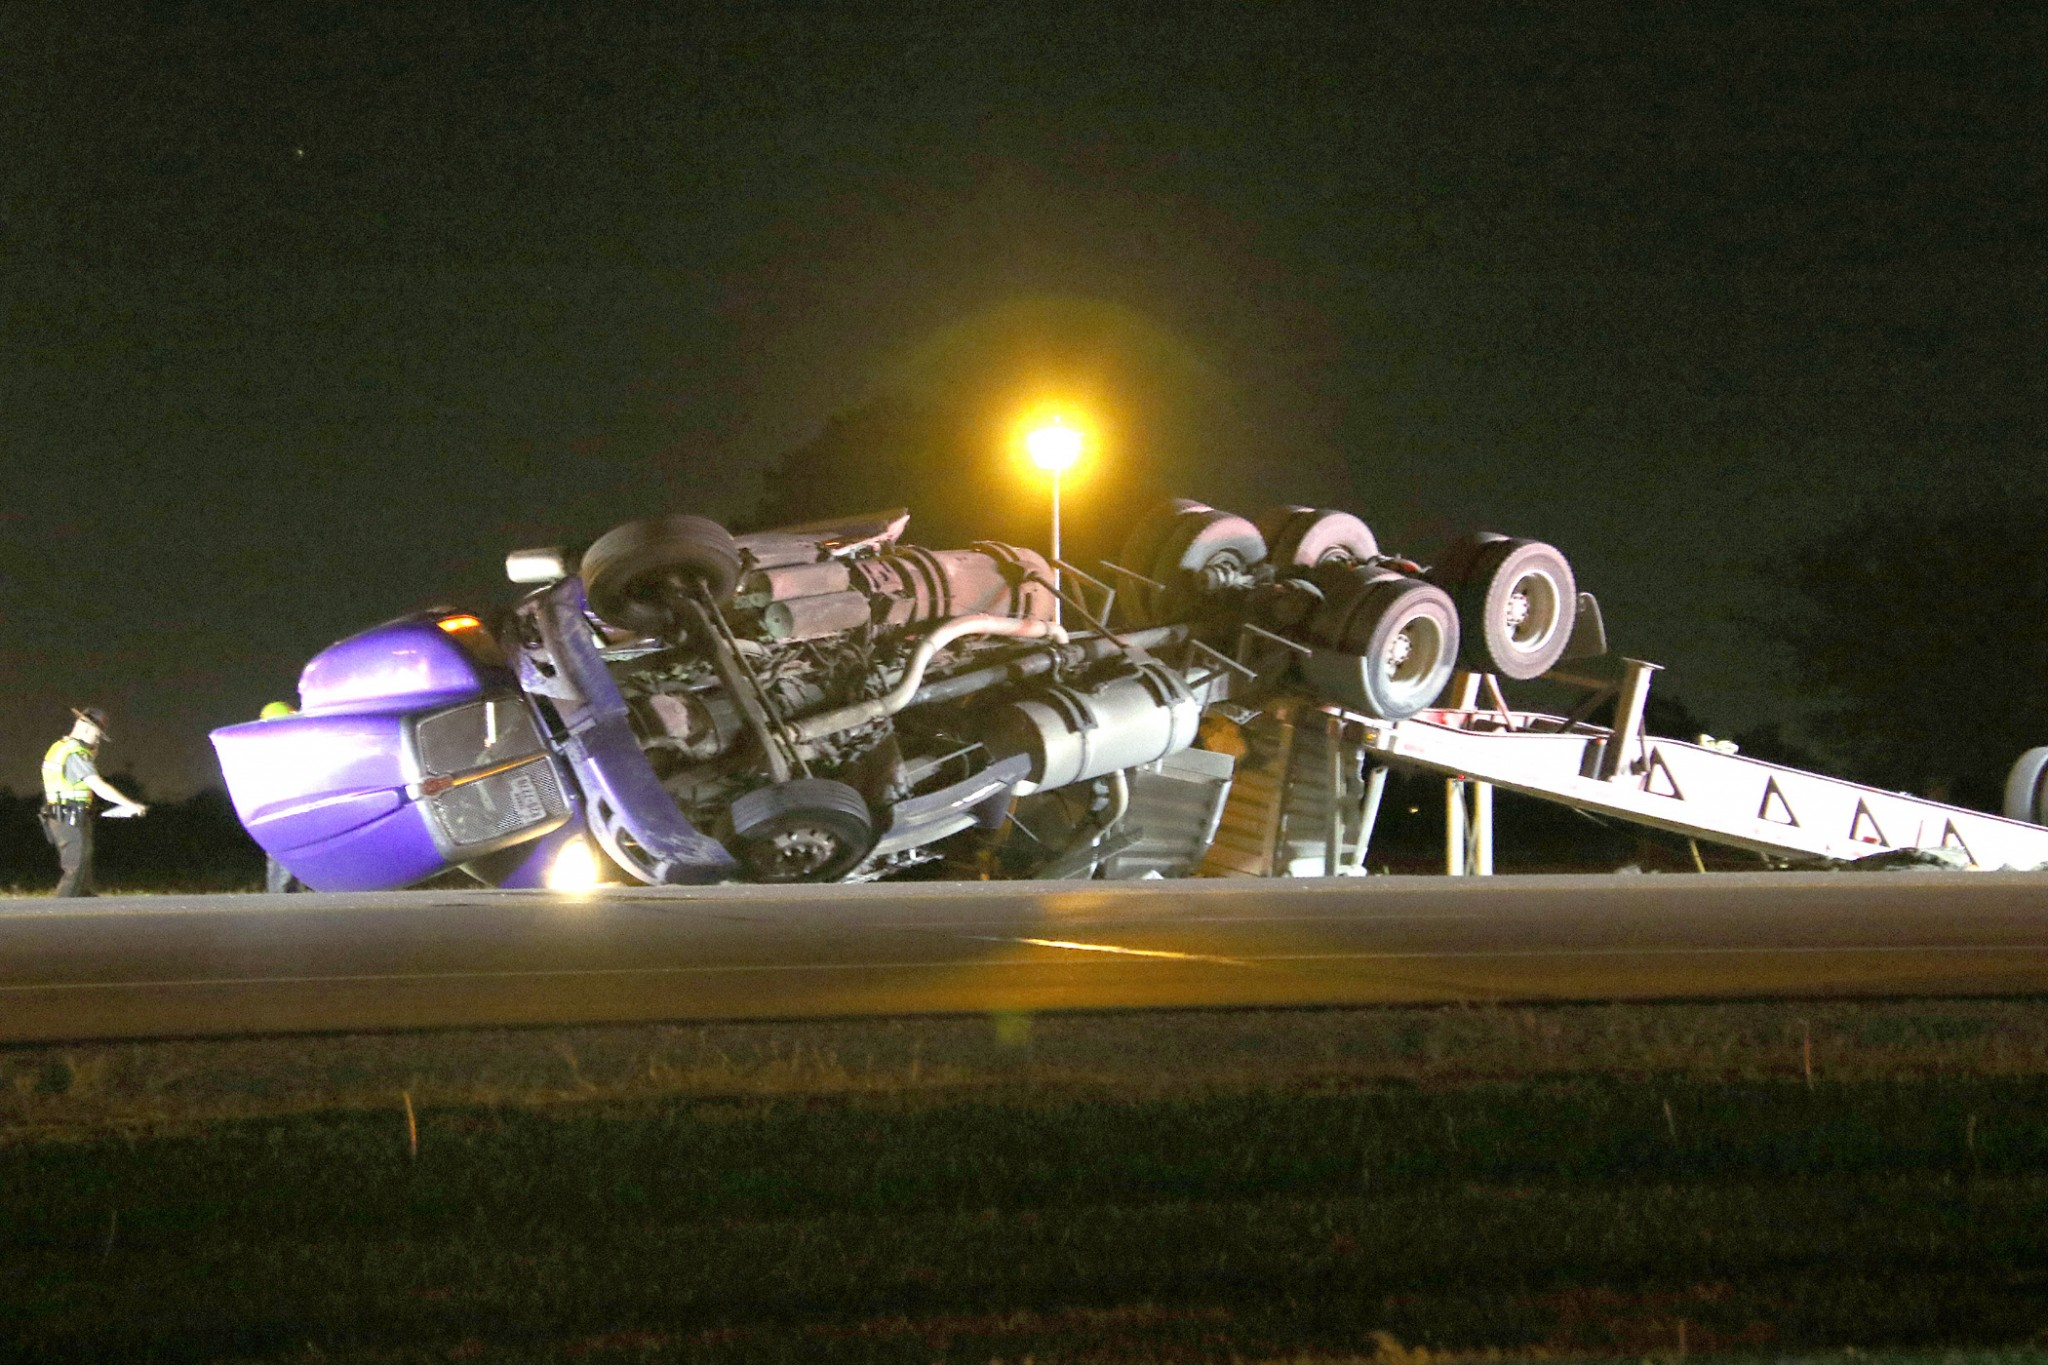 No injuries were reported after a truck traveling on State Route 579 overturned near the intersection with Woodville Road. The accident occurred May 23 around 9:10 p.m., according to the Ohio Highway Patrol. Jimmy D. Babineaux, Houston, Texas, was cited for failure to maintain control. The truck was hauling steel coils. (Press photo by Harold Hamilton HEHPhotos.smugmug.com)